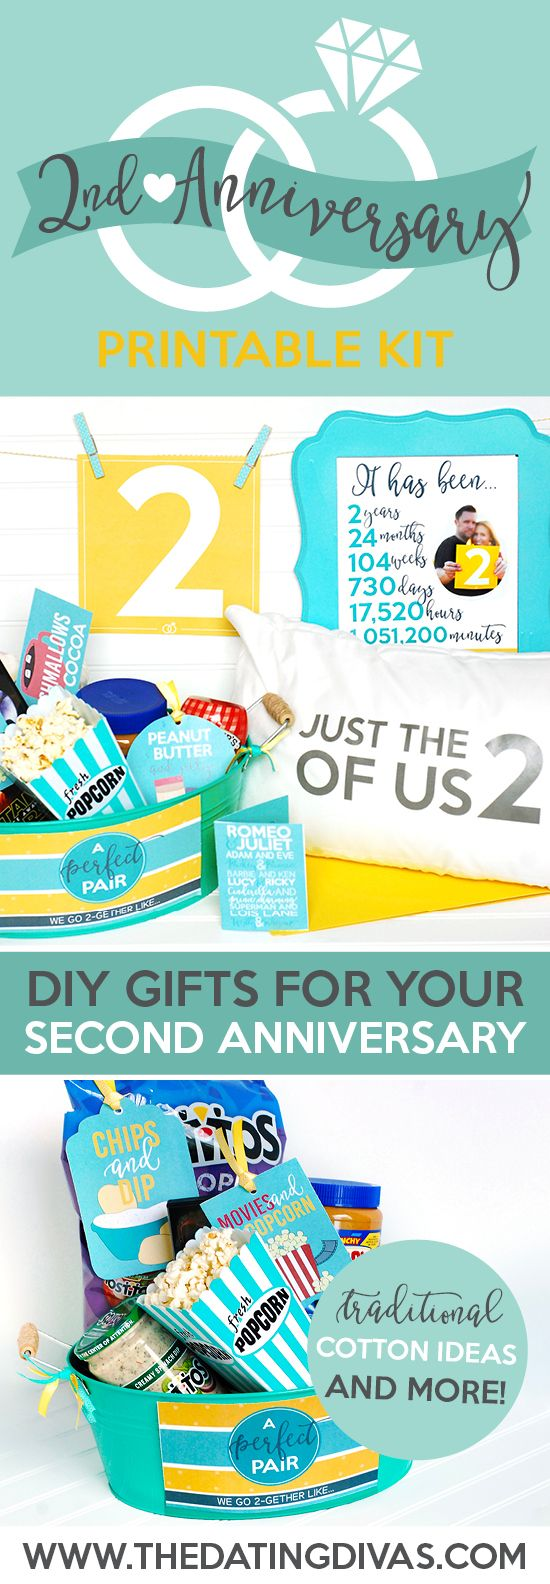 Darling DIY ideas for the second anniversary gift! I love that it's themed and includes a traditional cotton gift!